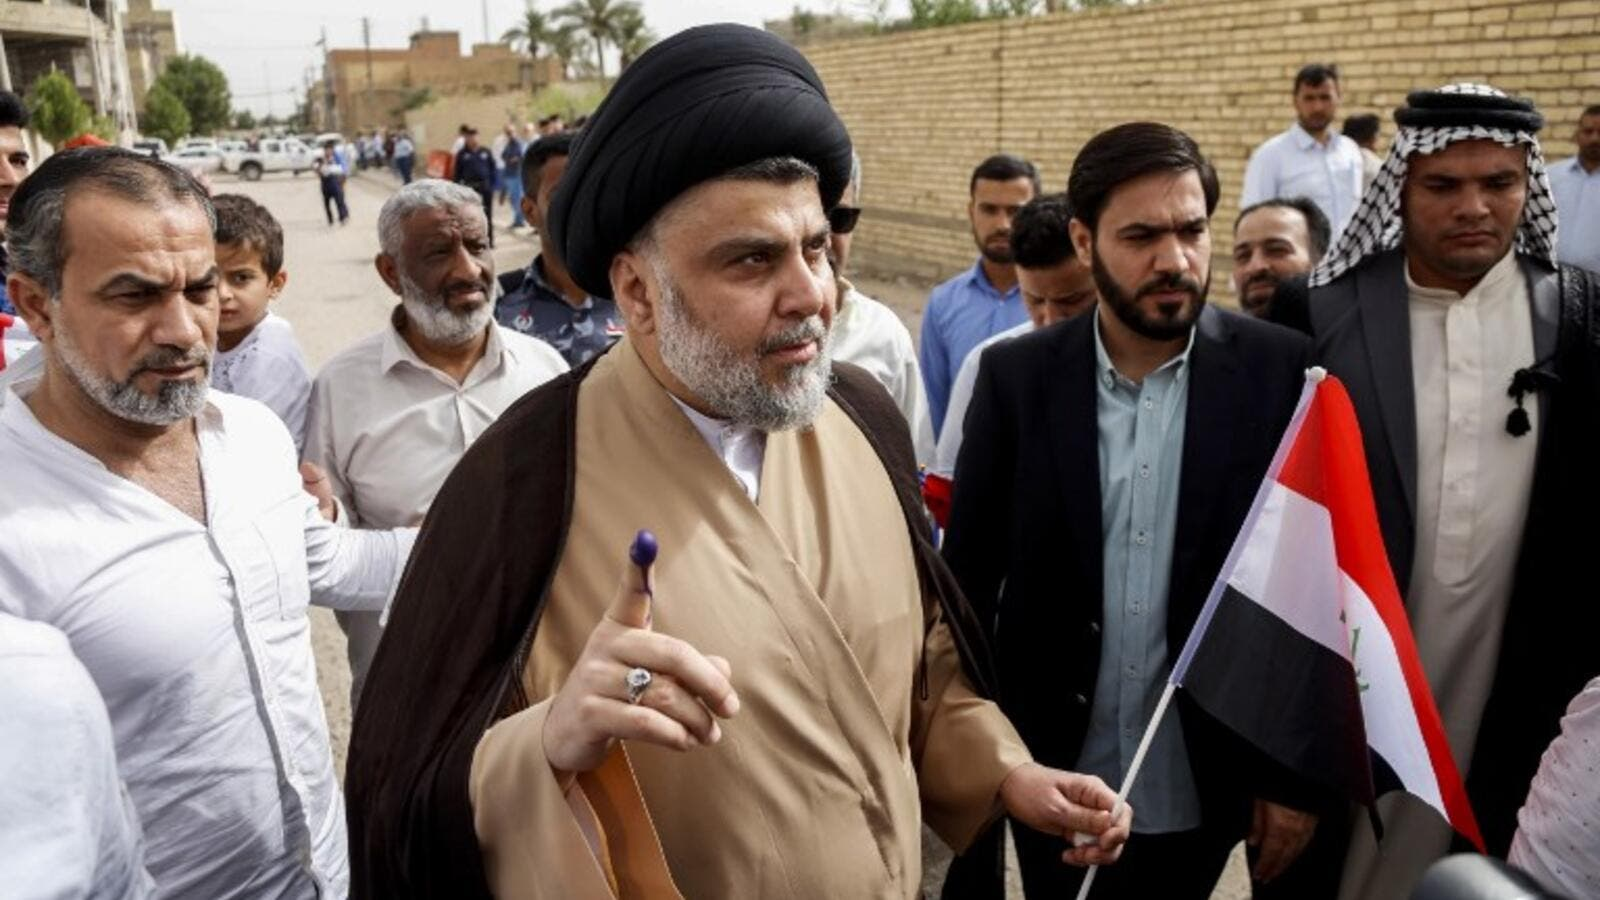 Iraqi Shiite cleric and leader Moqtada al-Sadr (AFP/File Photo)